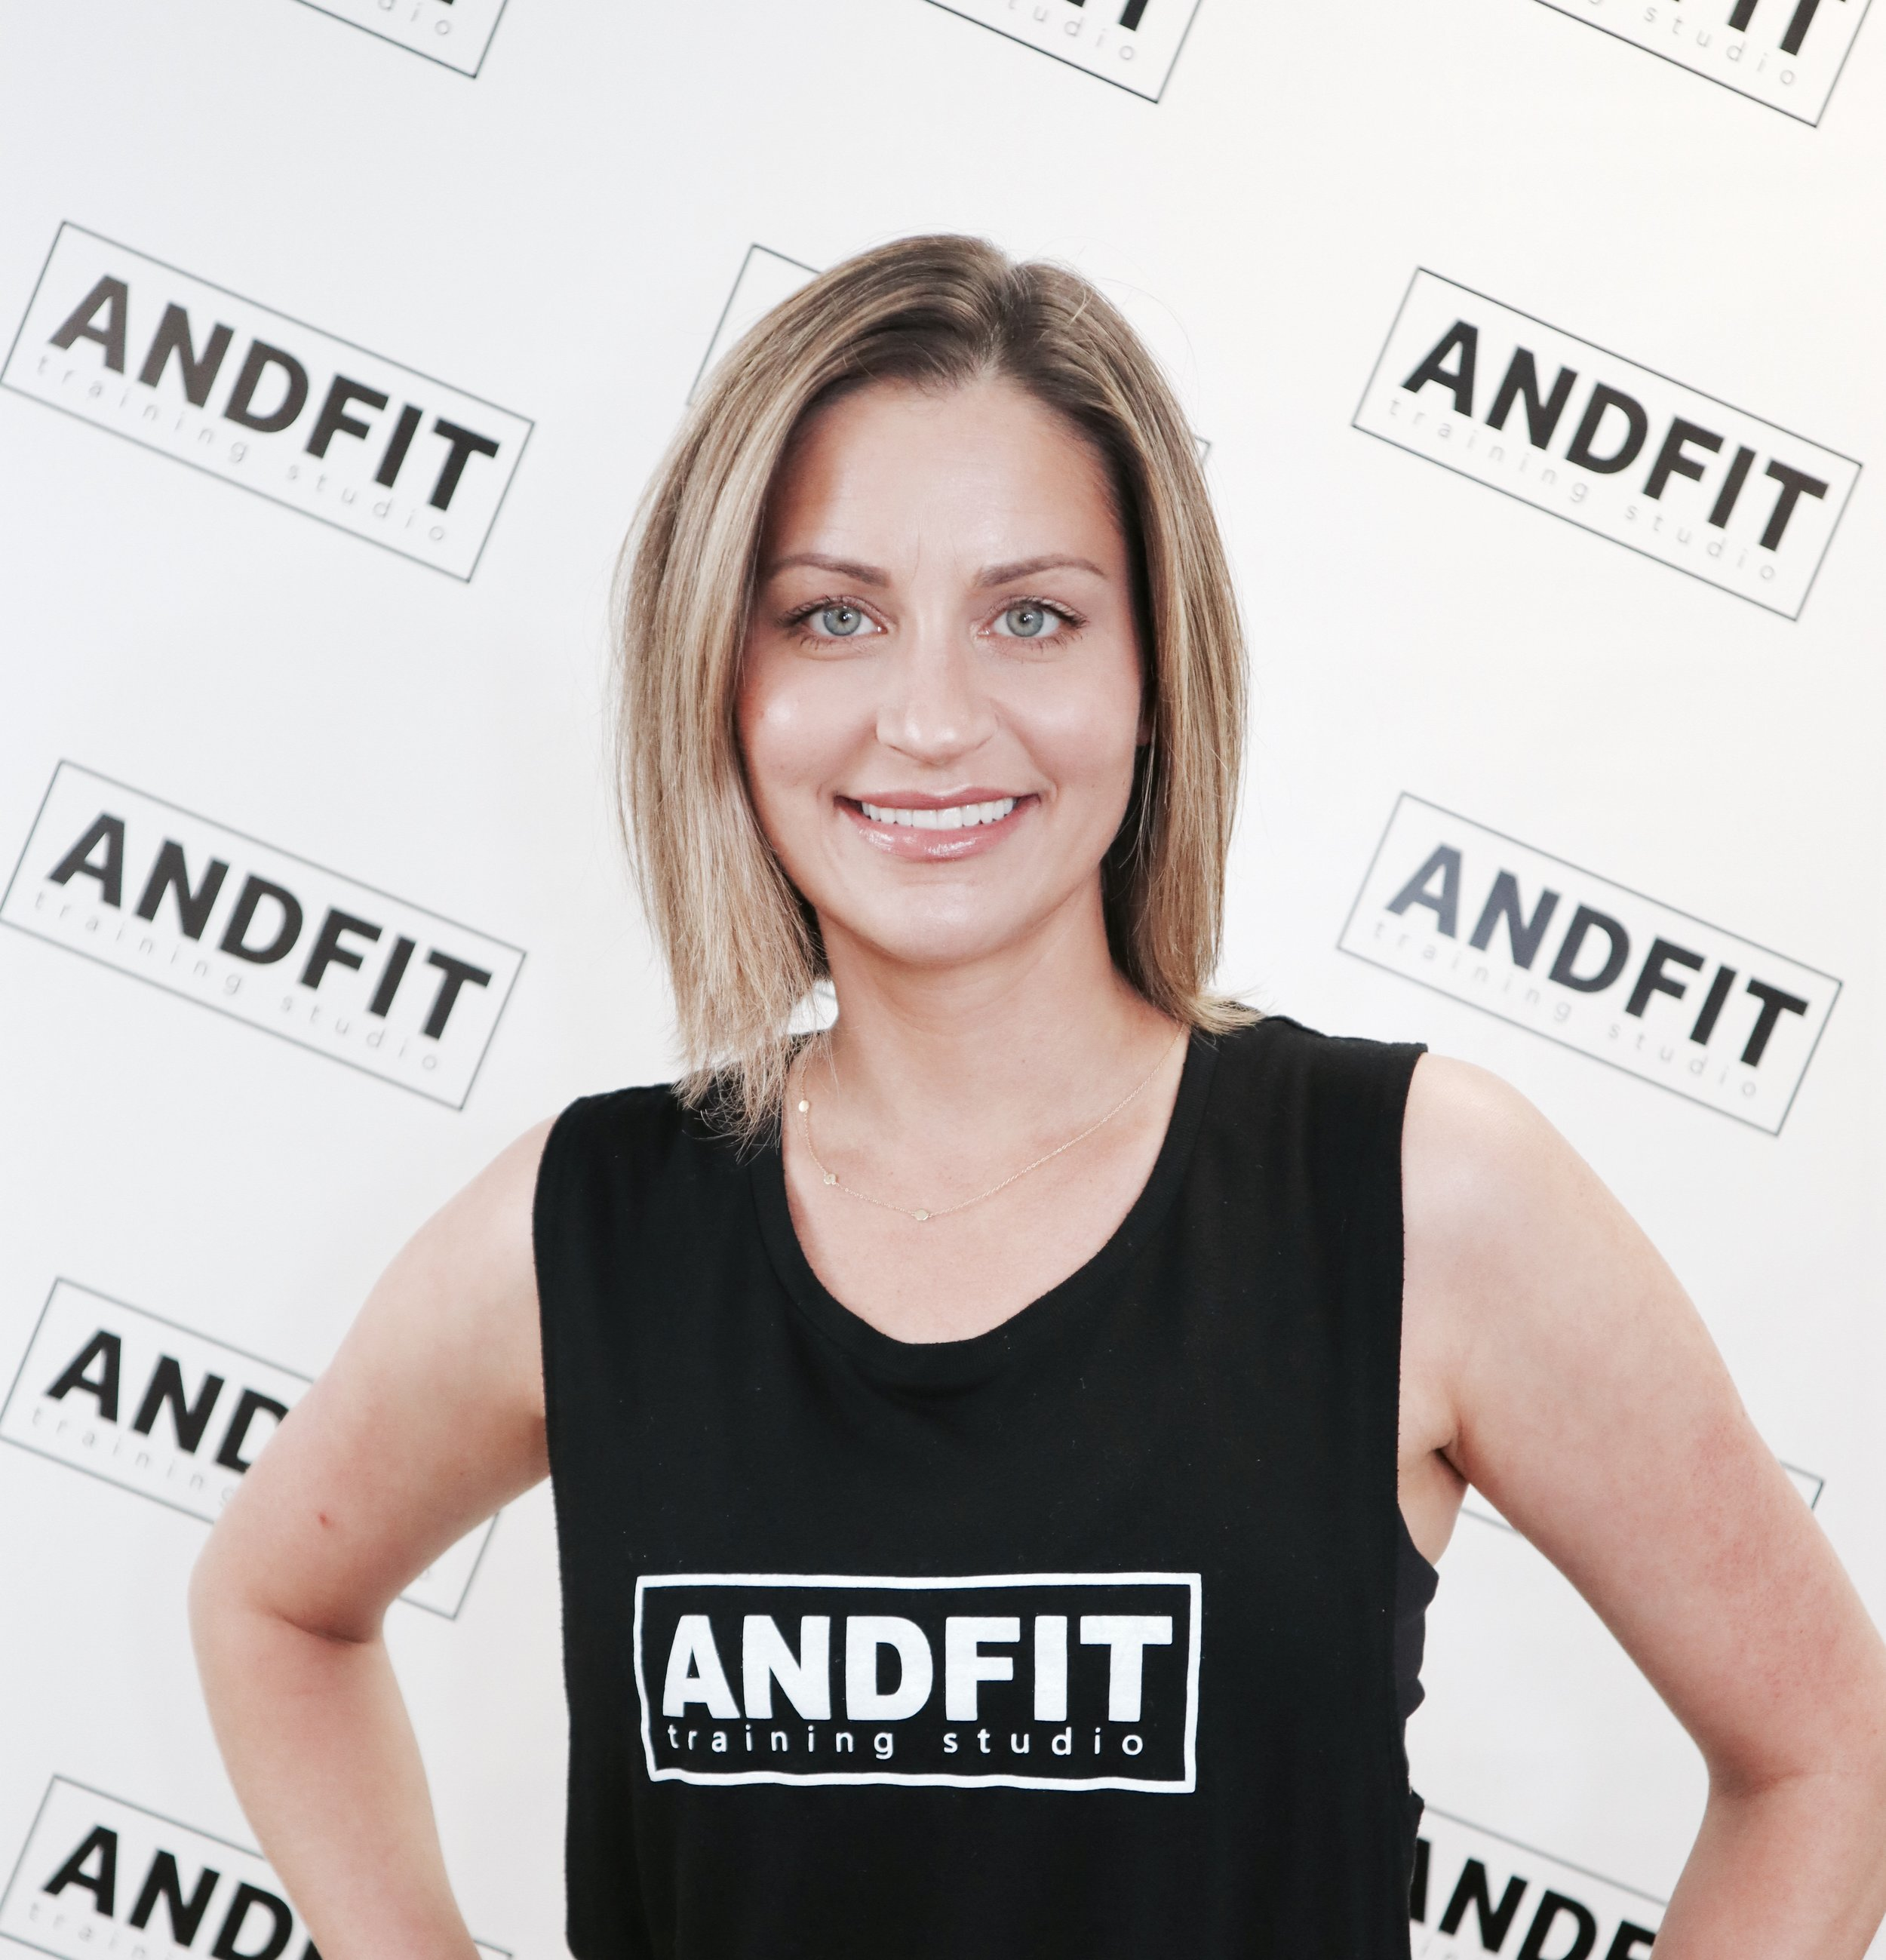 Leah Aarts, FIS ANDFIT Fitness Instructor